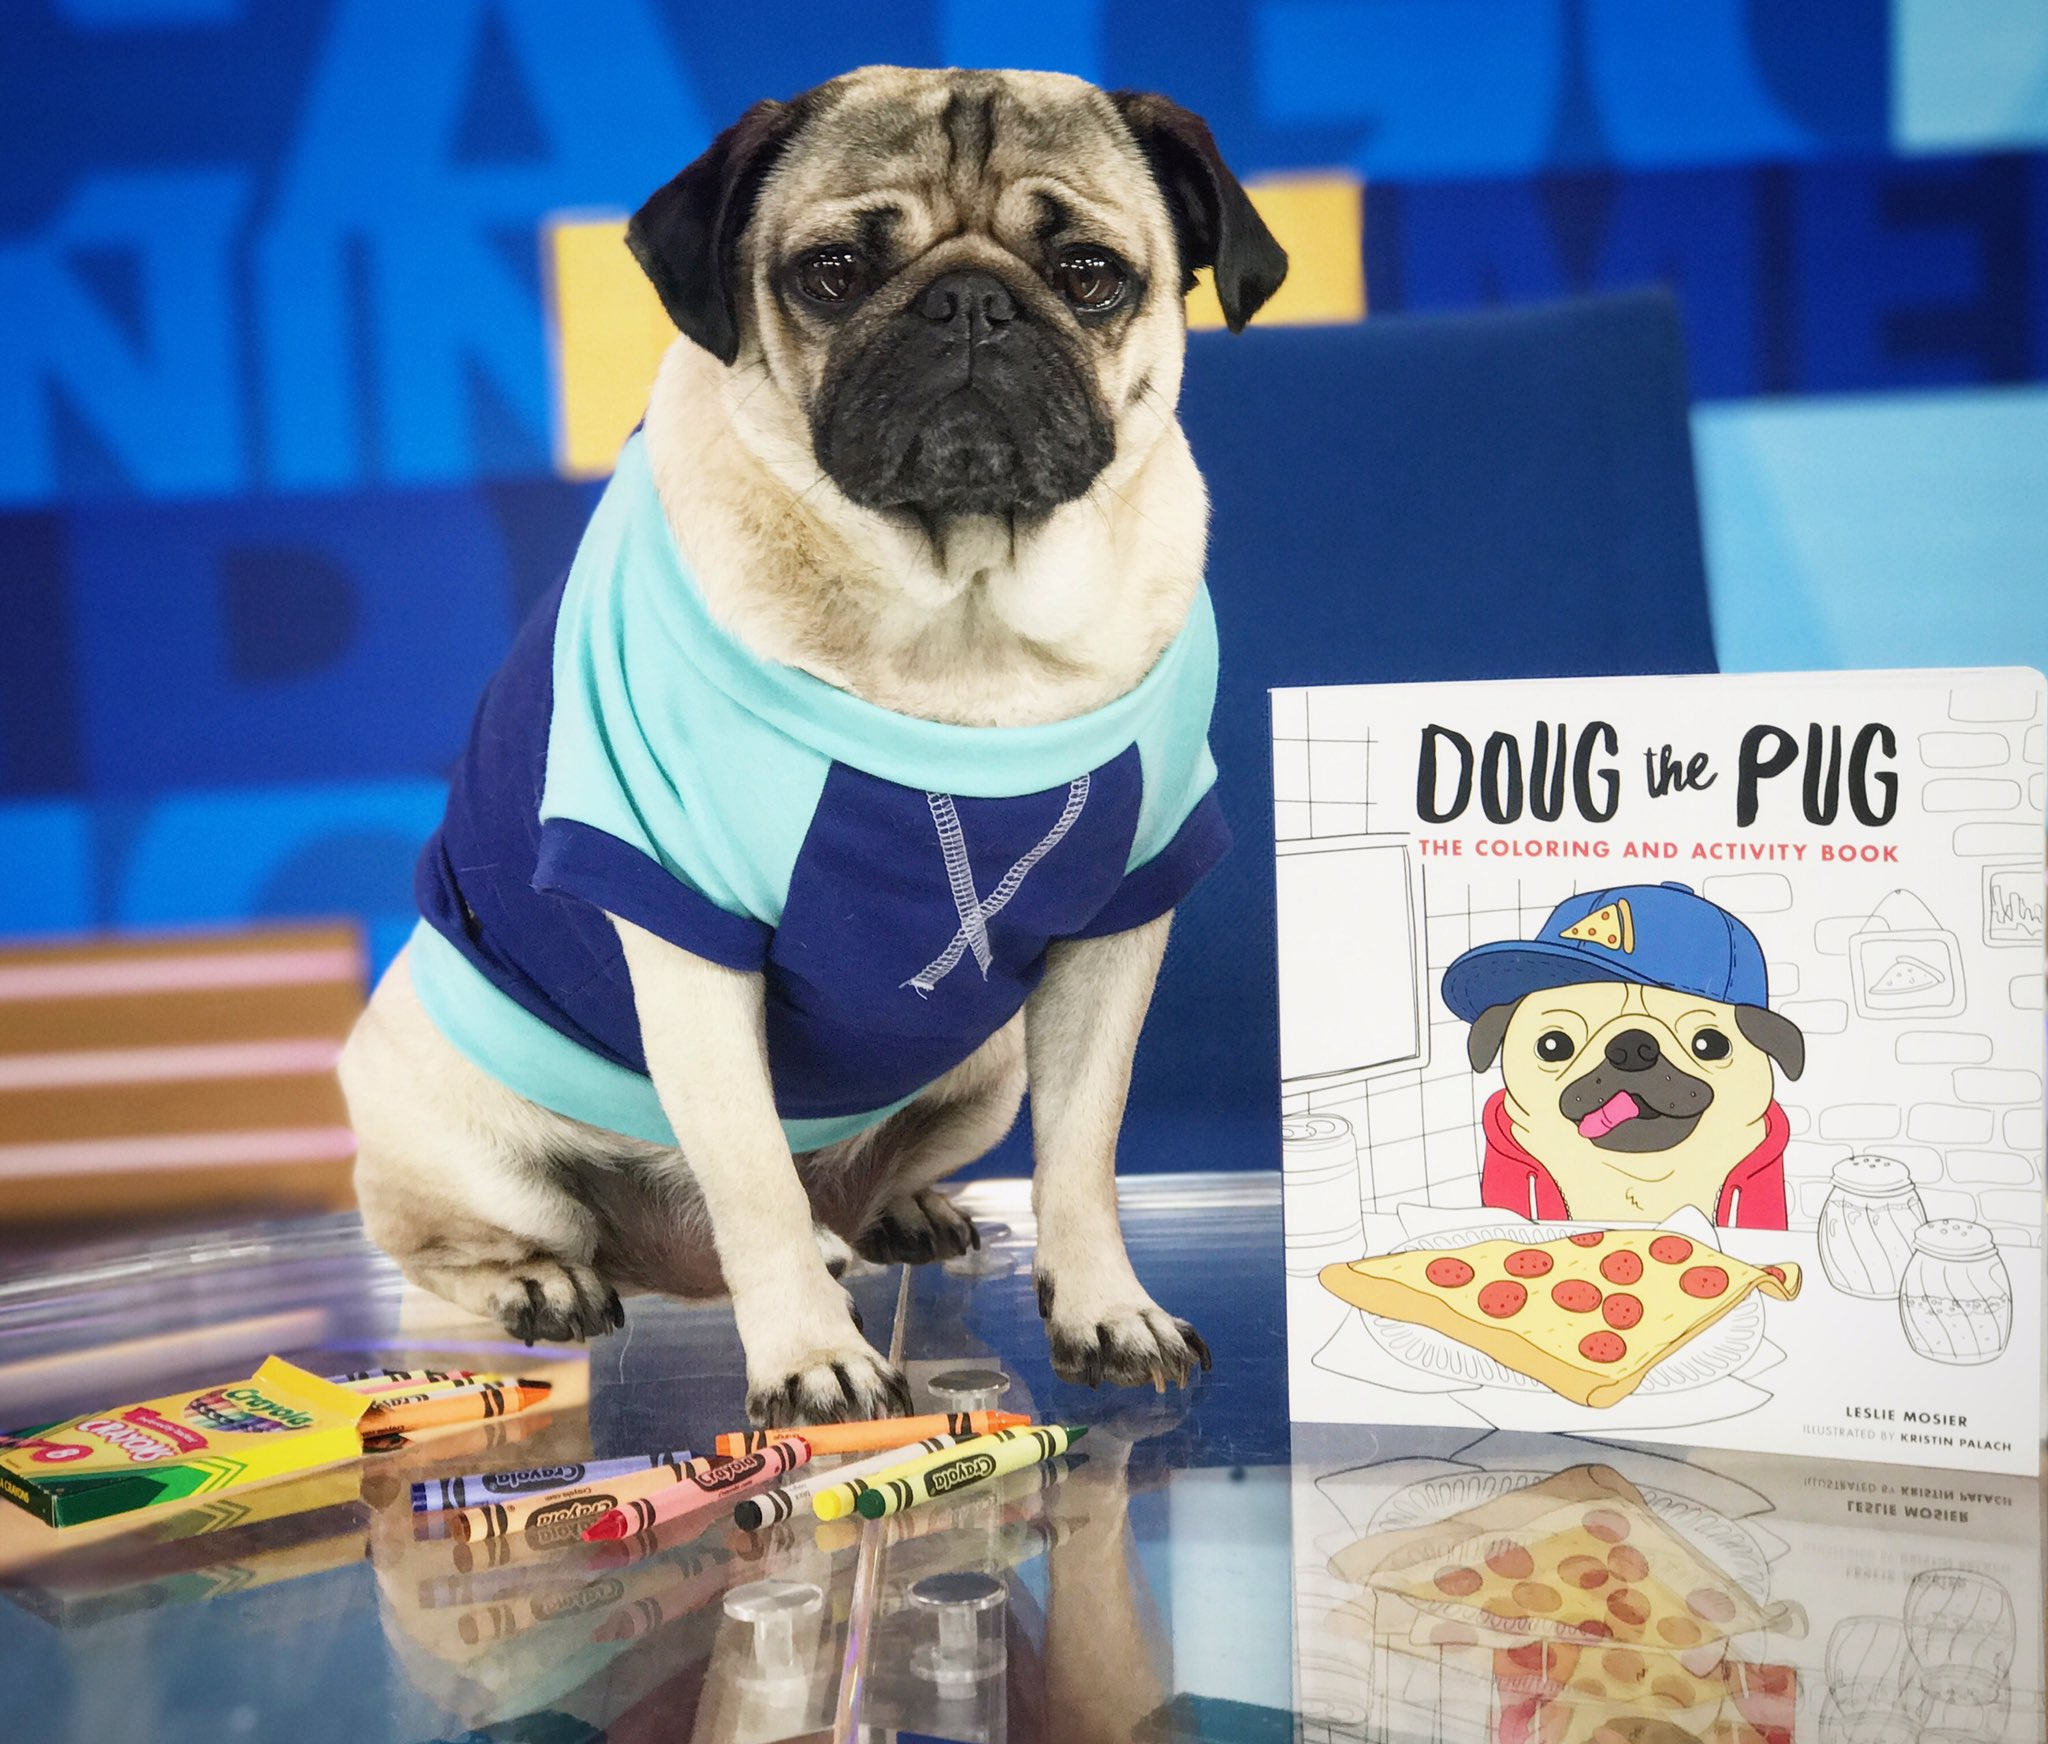 Good Morning America On Twitter Congrats Itsdougthepug Your Coloring Book Out This Thanks For Stopping By Times Square